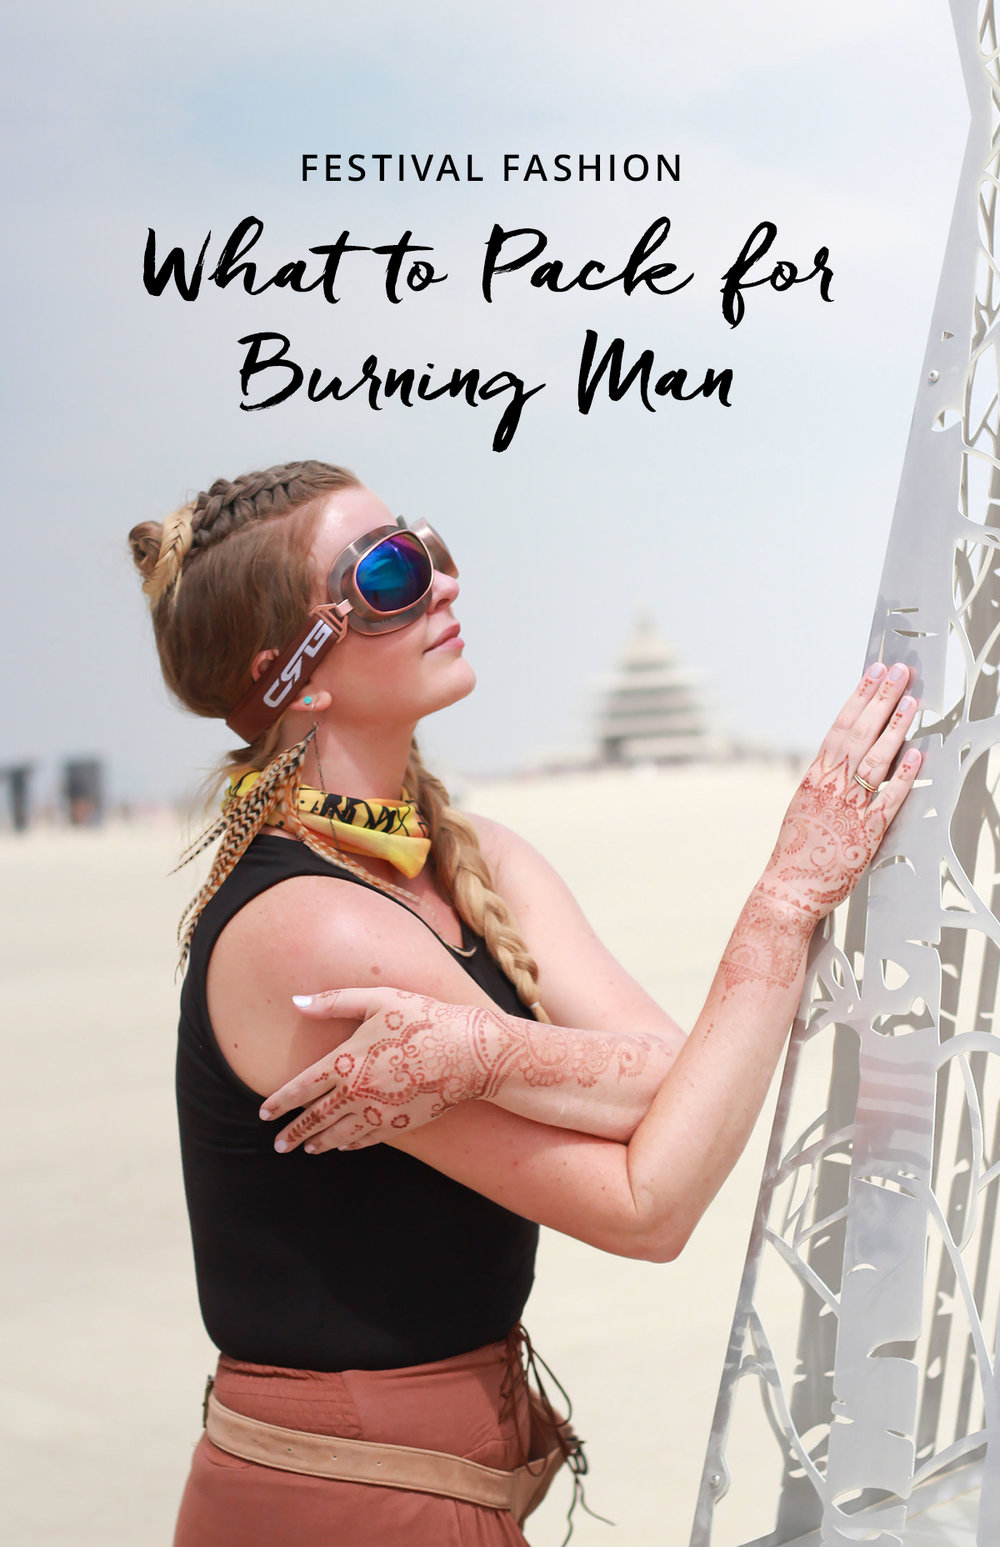 social-chrissihernandez-pin-burningman-packinglist.jpg